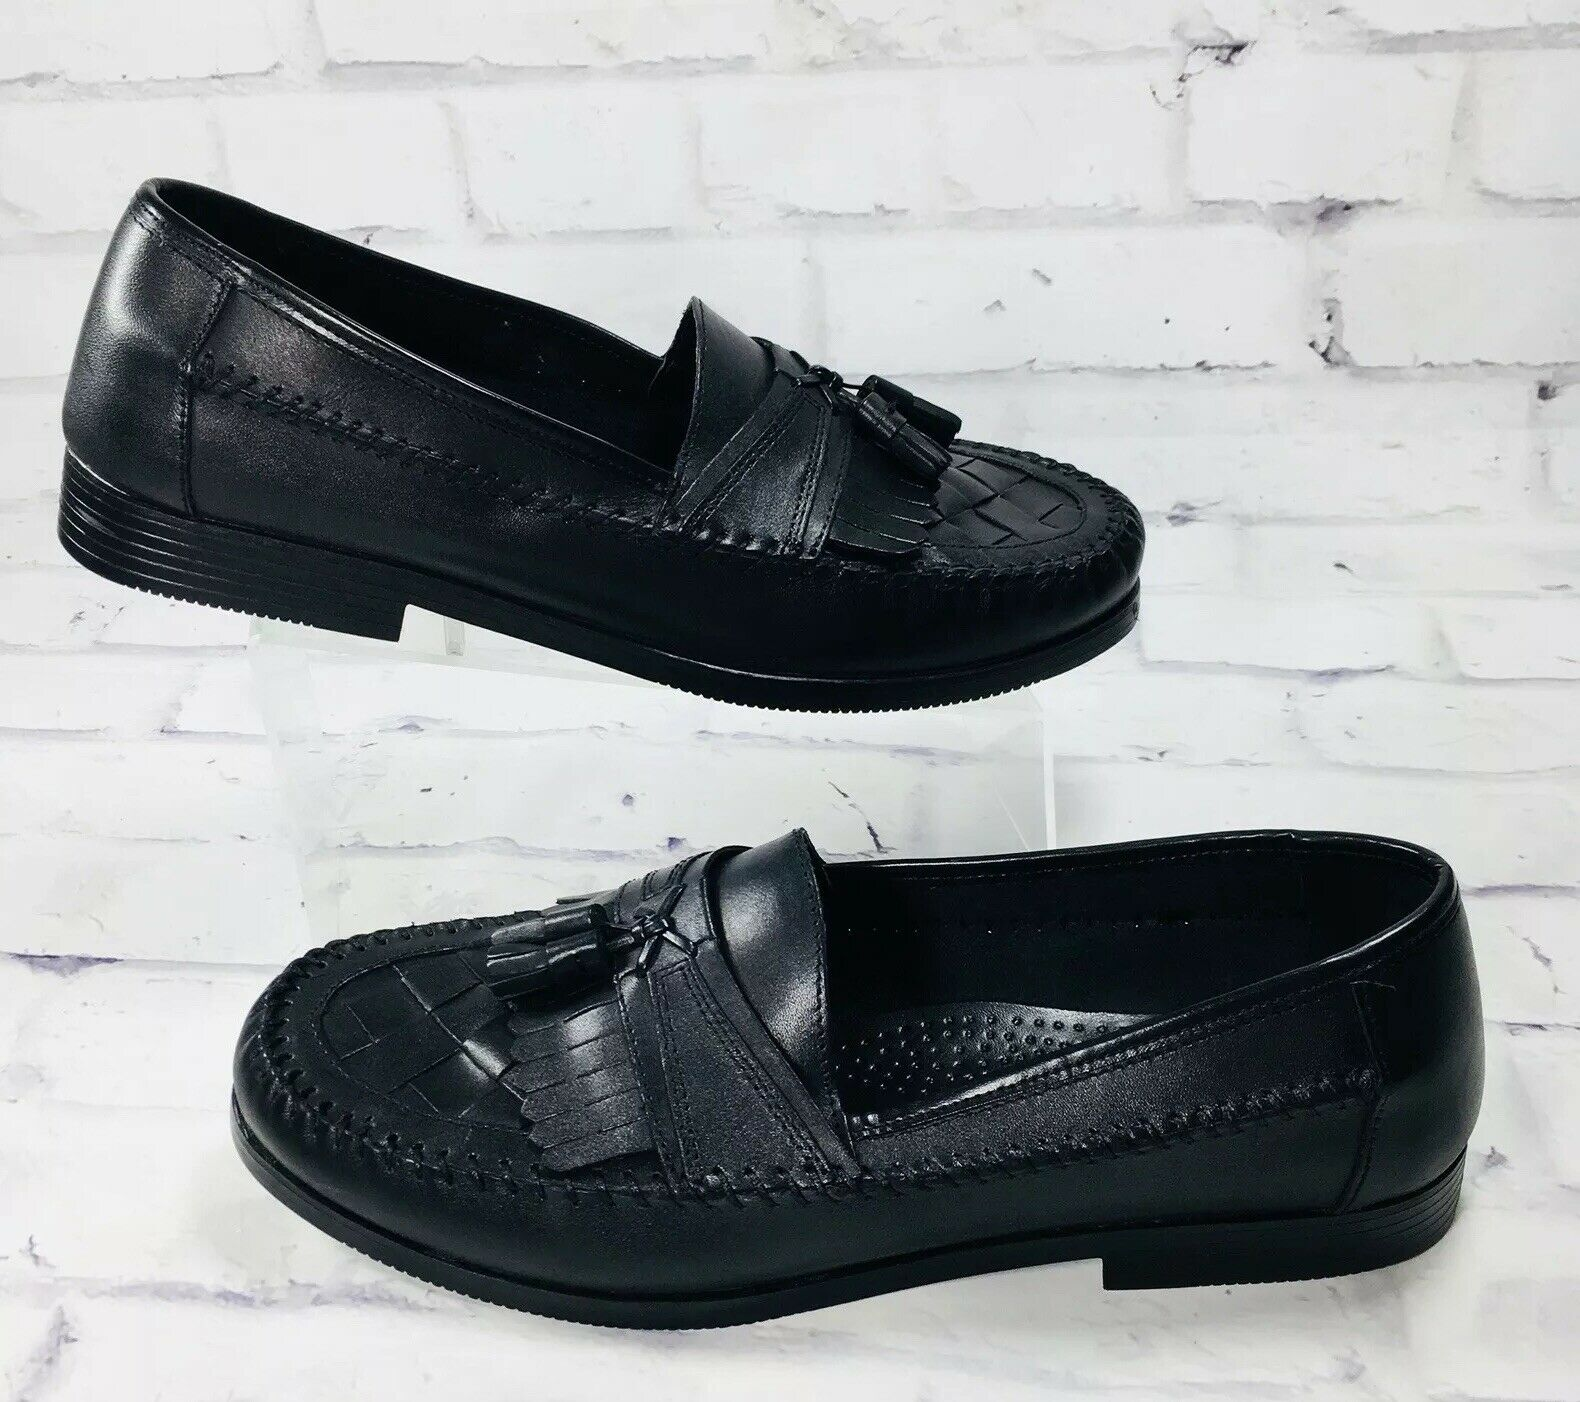 d4ec9797d181 Giorgio Brutini shoes Men s Size Size Size 13 M Soft Leather Loafer Black  Tassels 35f3a7 ...